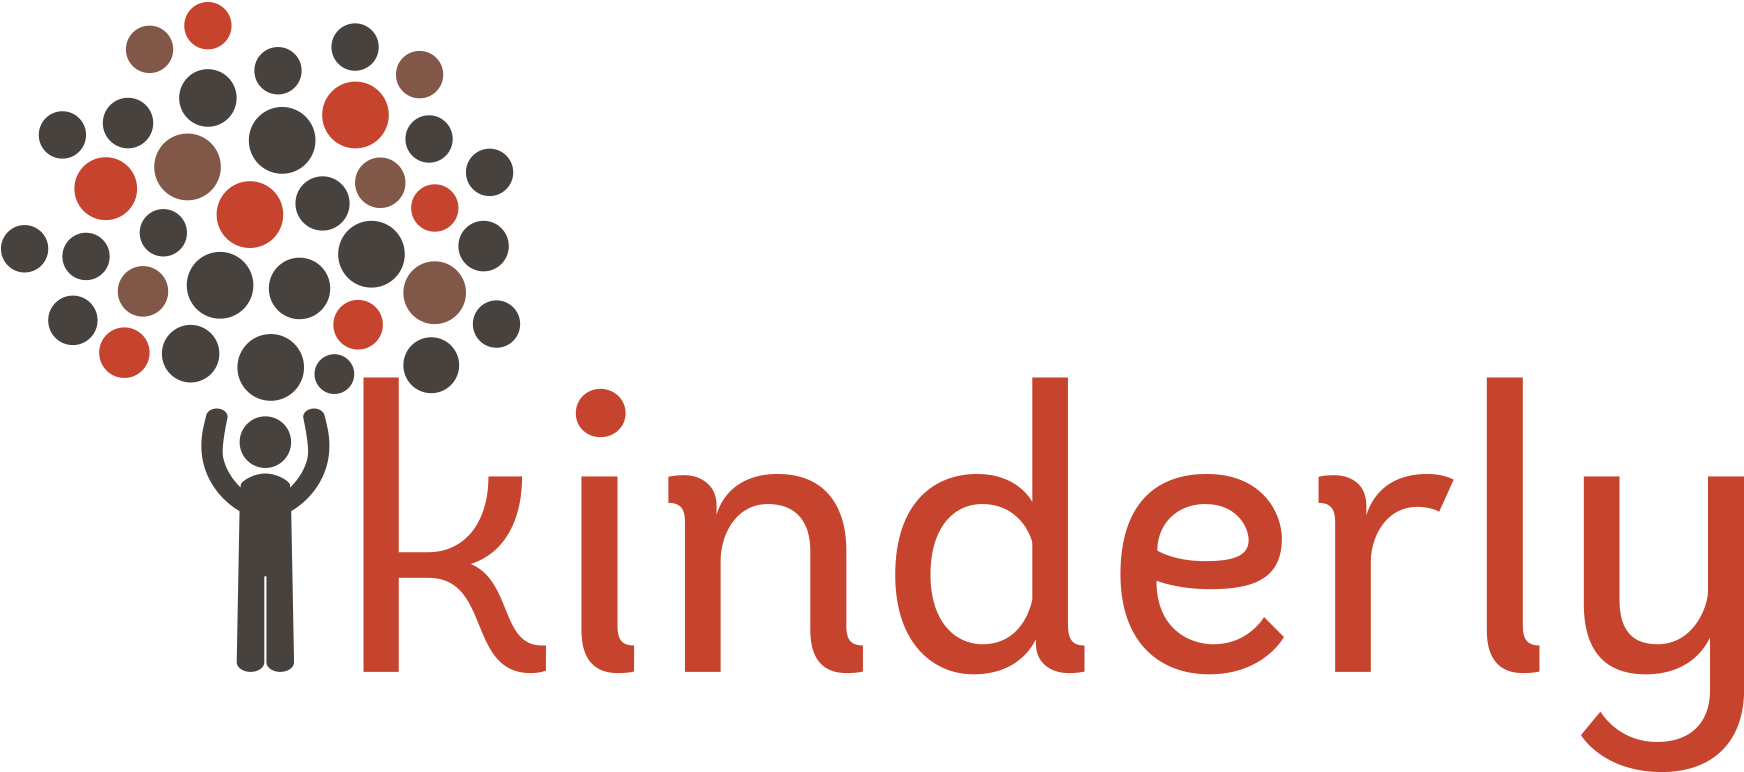 kinderly logo